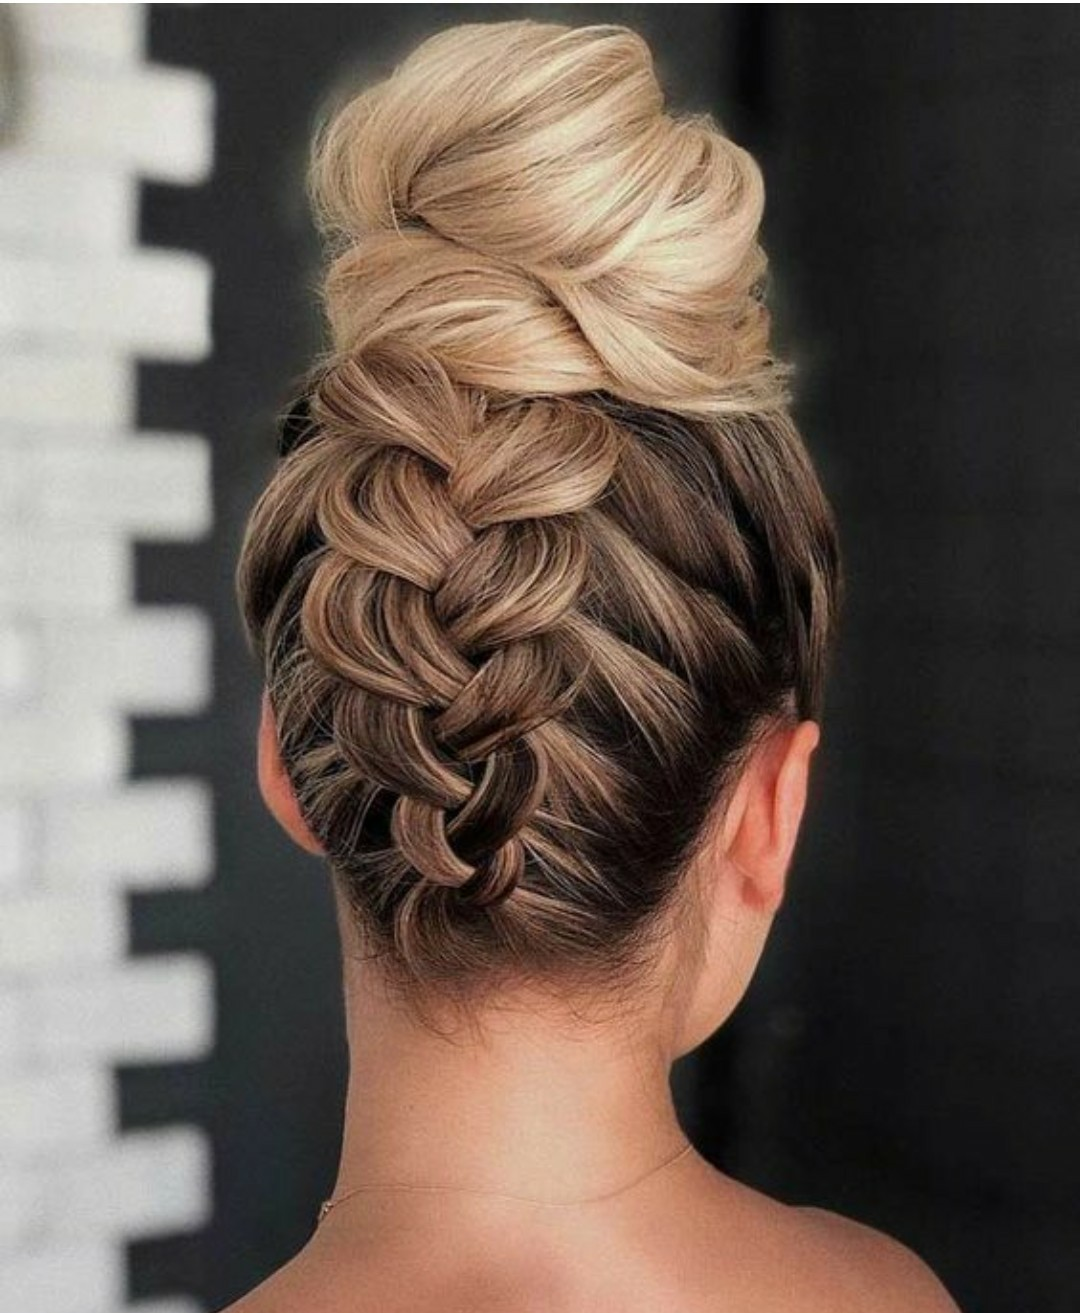 7 Stunning Bridal Juda Hairstyles For Contemporary Brides - Wedamor